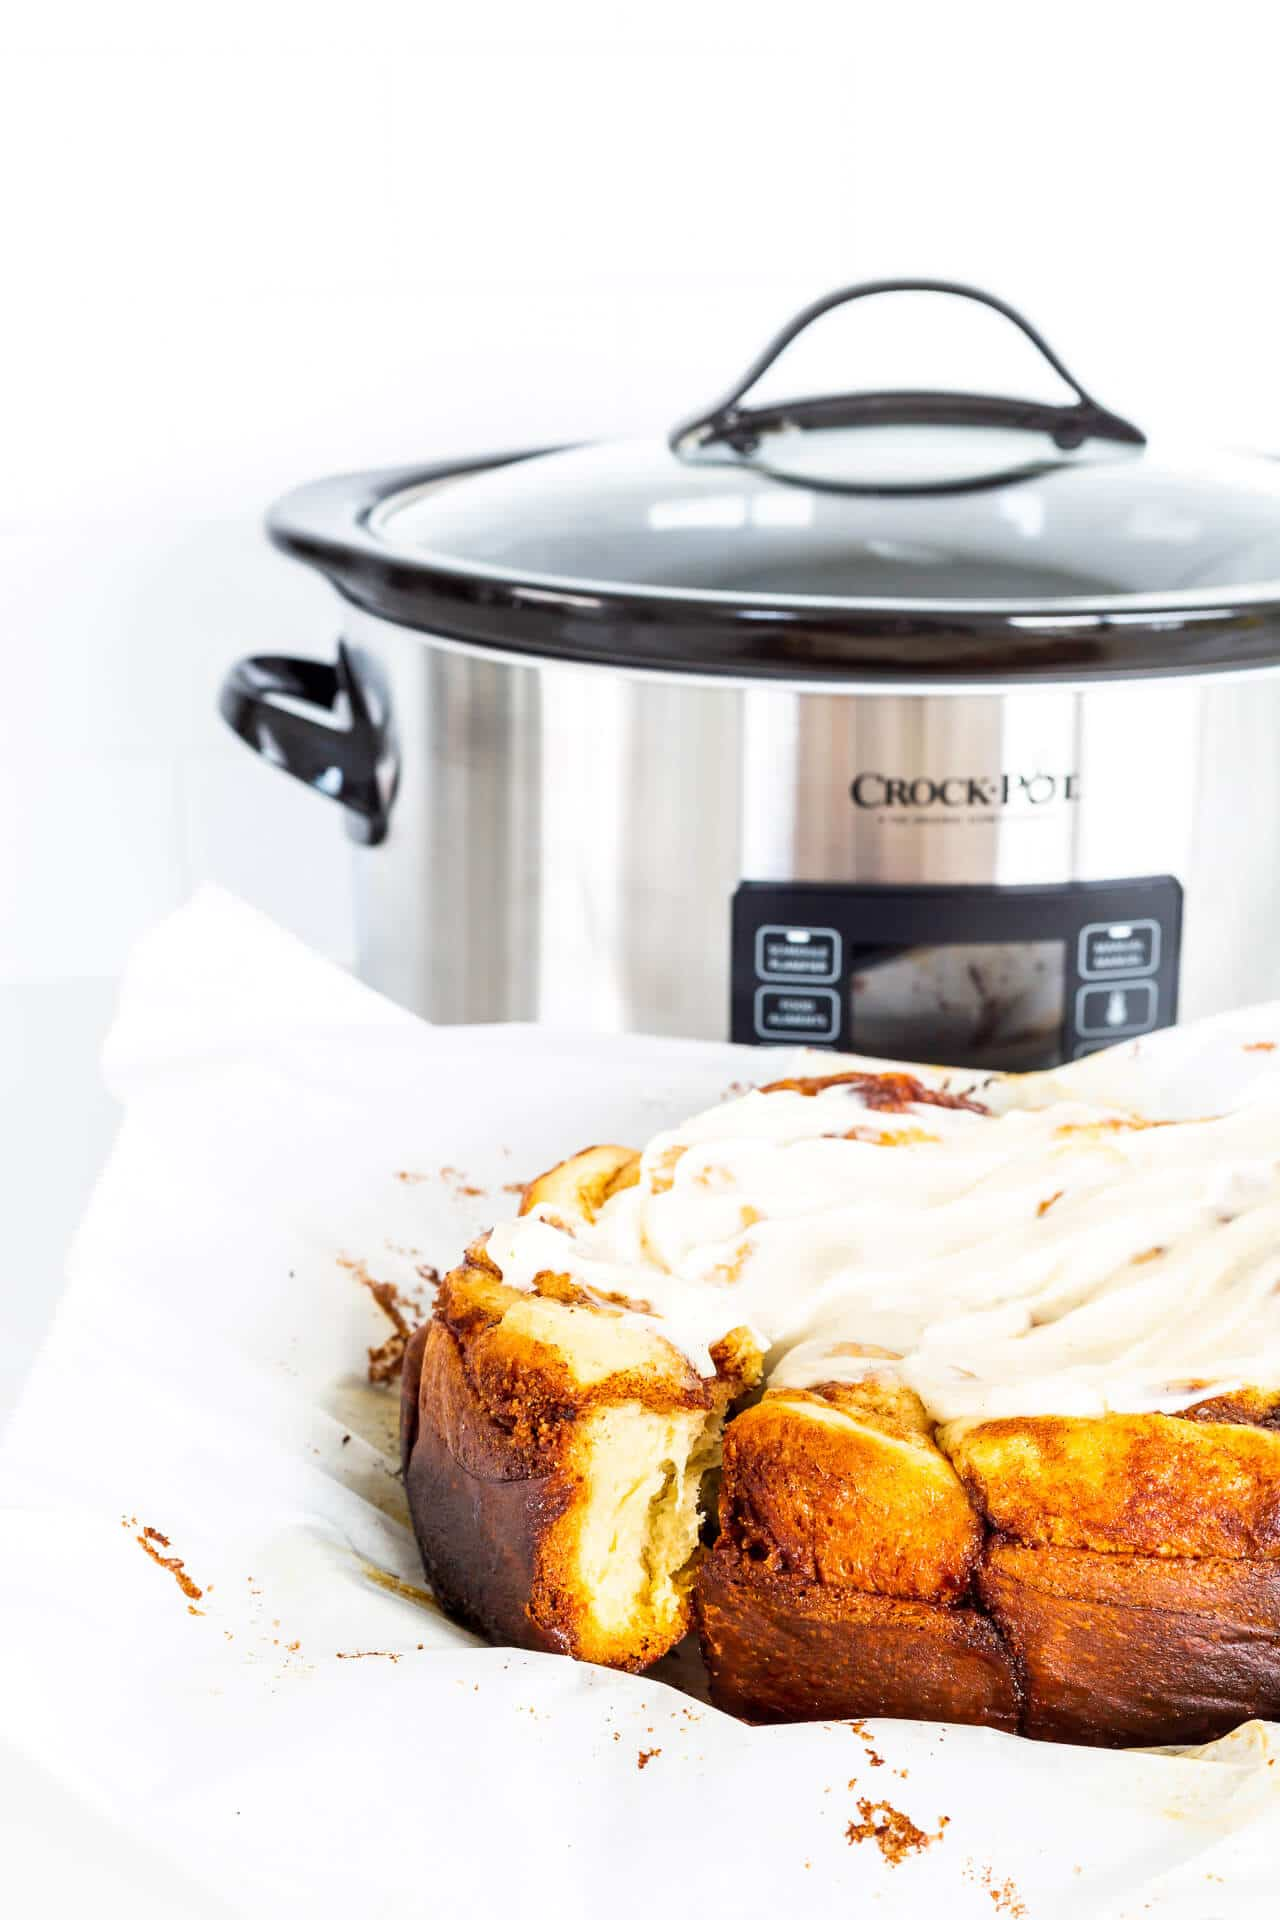 Frosted Crock-Pot cinnamon rolls freshly baked next to the slow cooker they were baked in